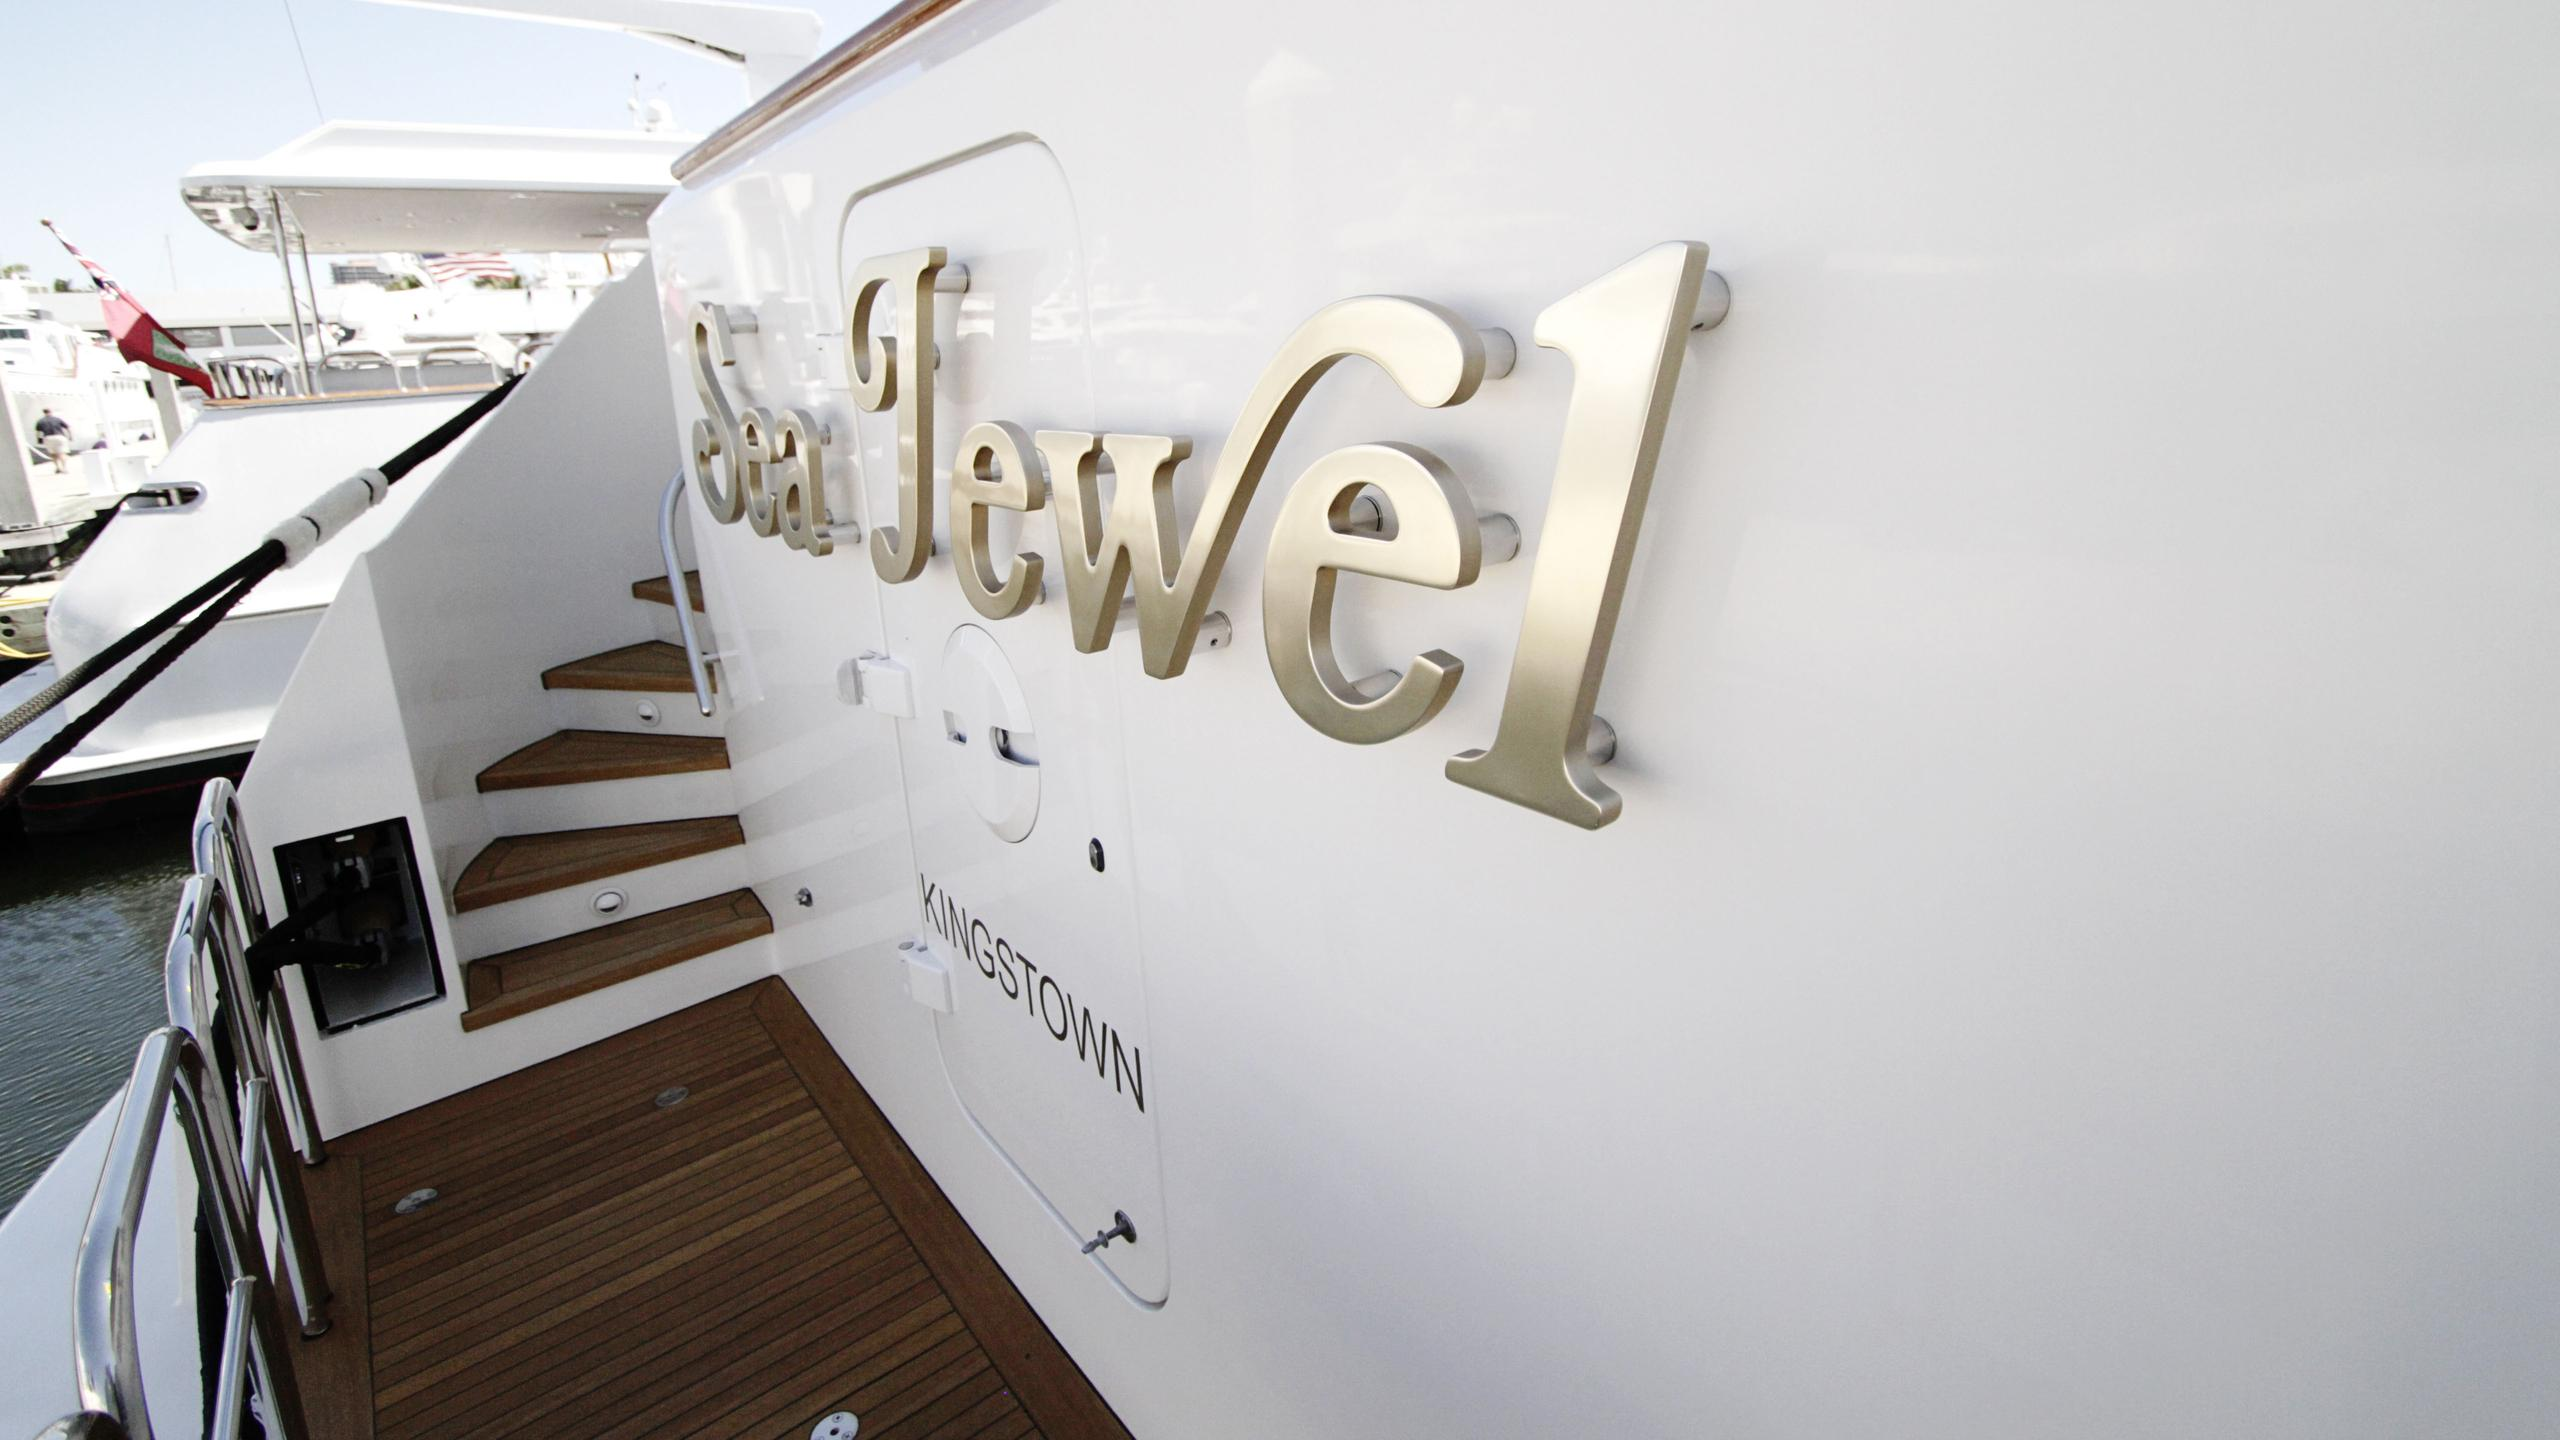 sea-jewel-bravo-yacht-stern